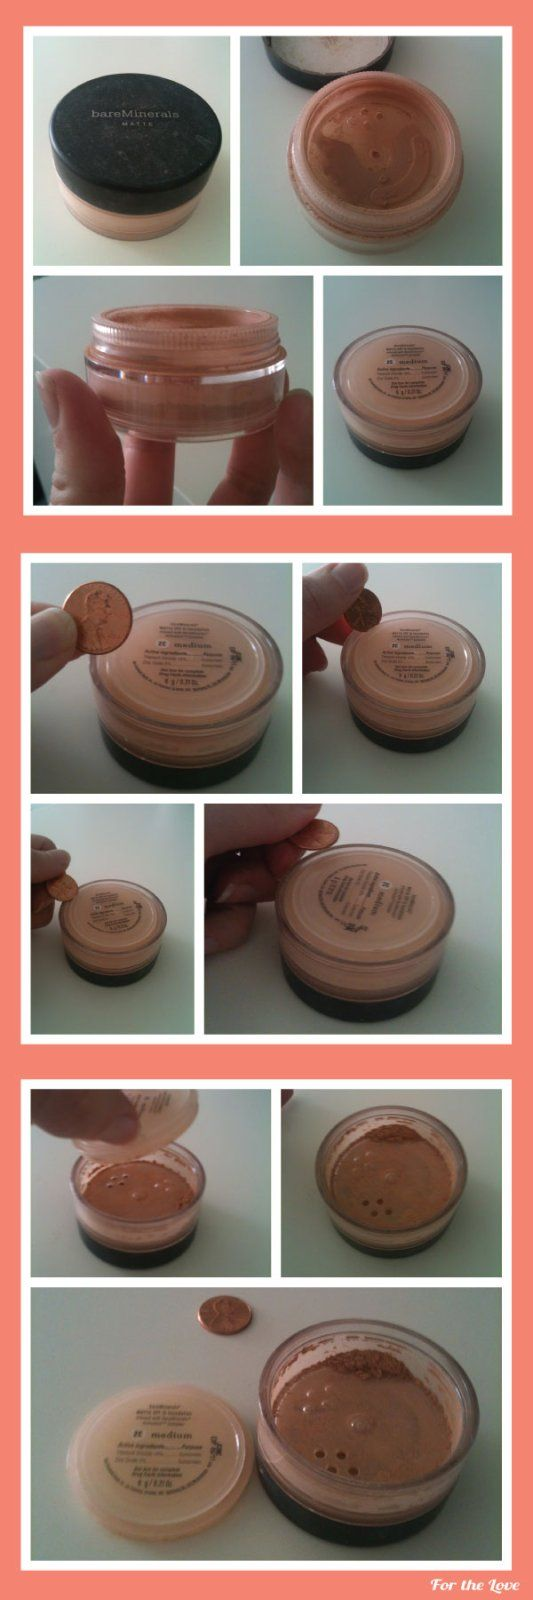 Obsessed...Bare Minerals Tip (that will only cost you 1 penny) Makeup tutorials you can find here: http://crazymakeupideas.com/tips-for-summer-makeup/